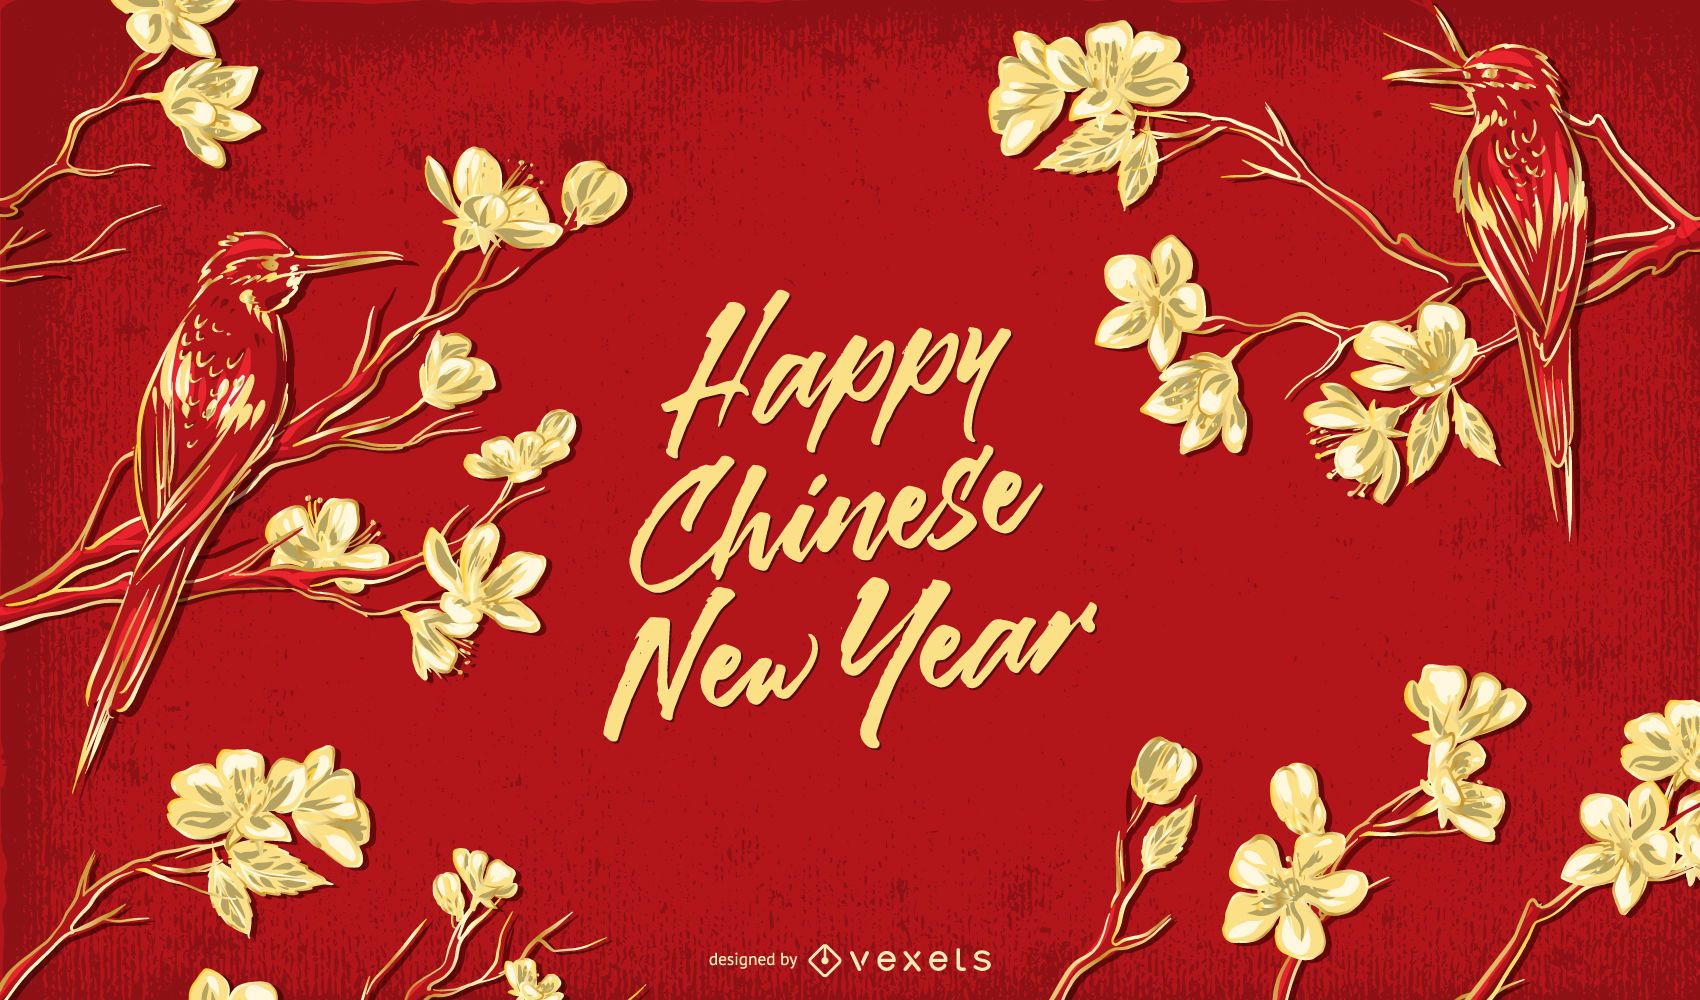 Happy Chinese New Year Floral Illustration